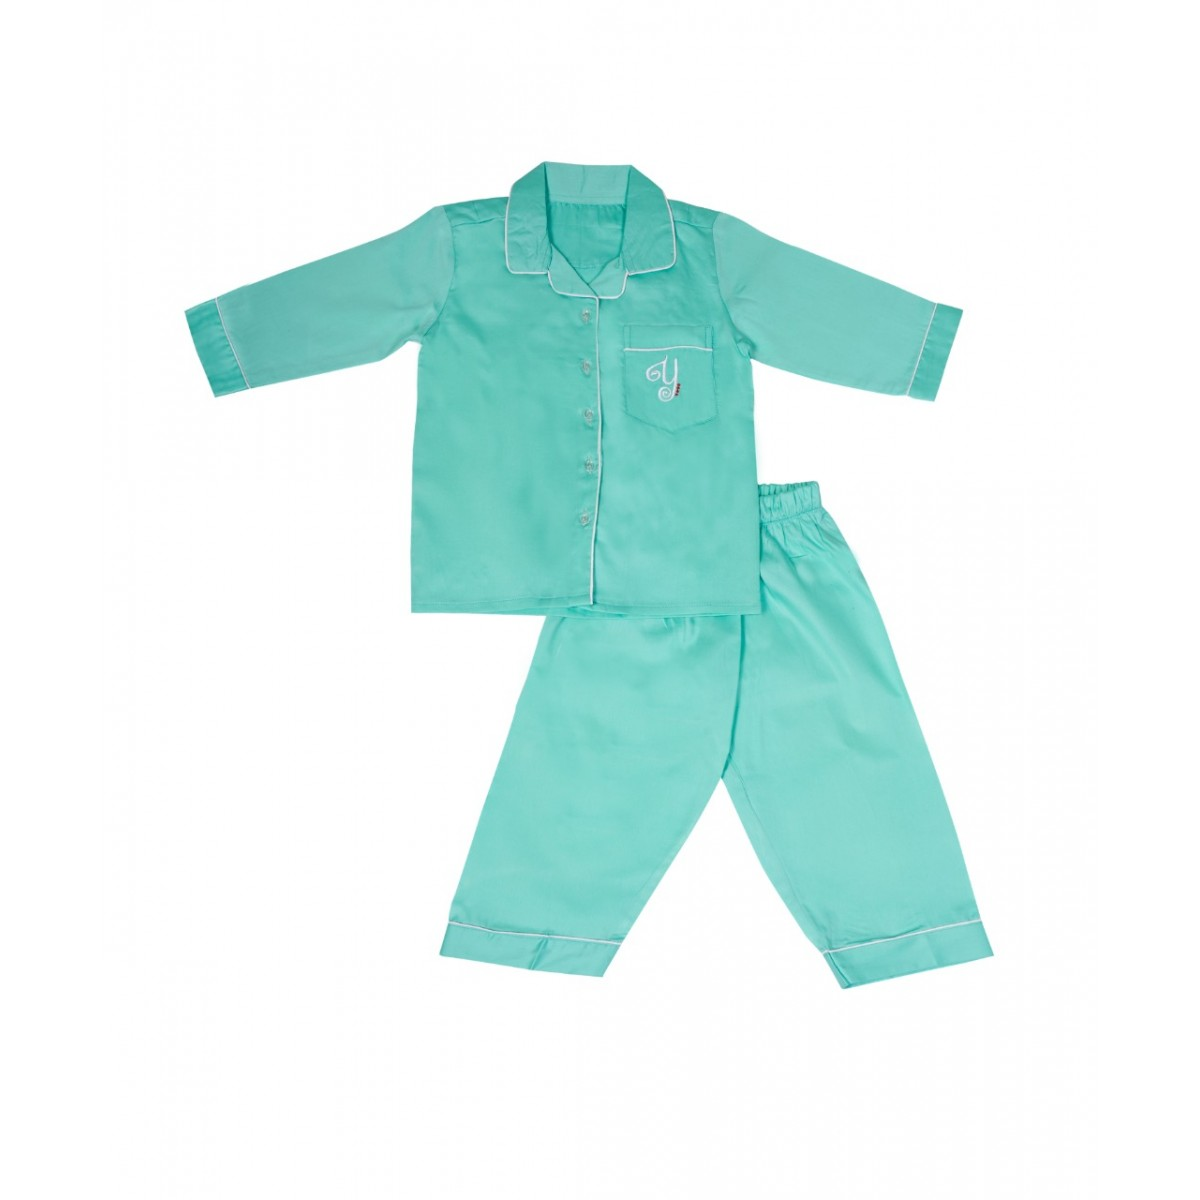 Turquoise Blue Nightsuit